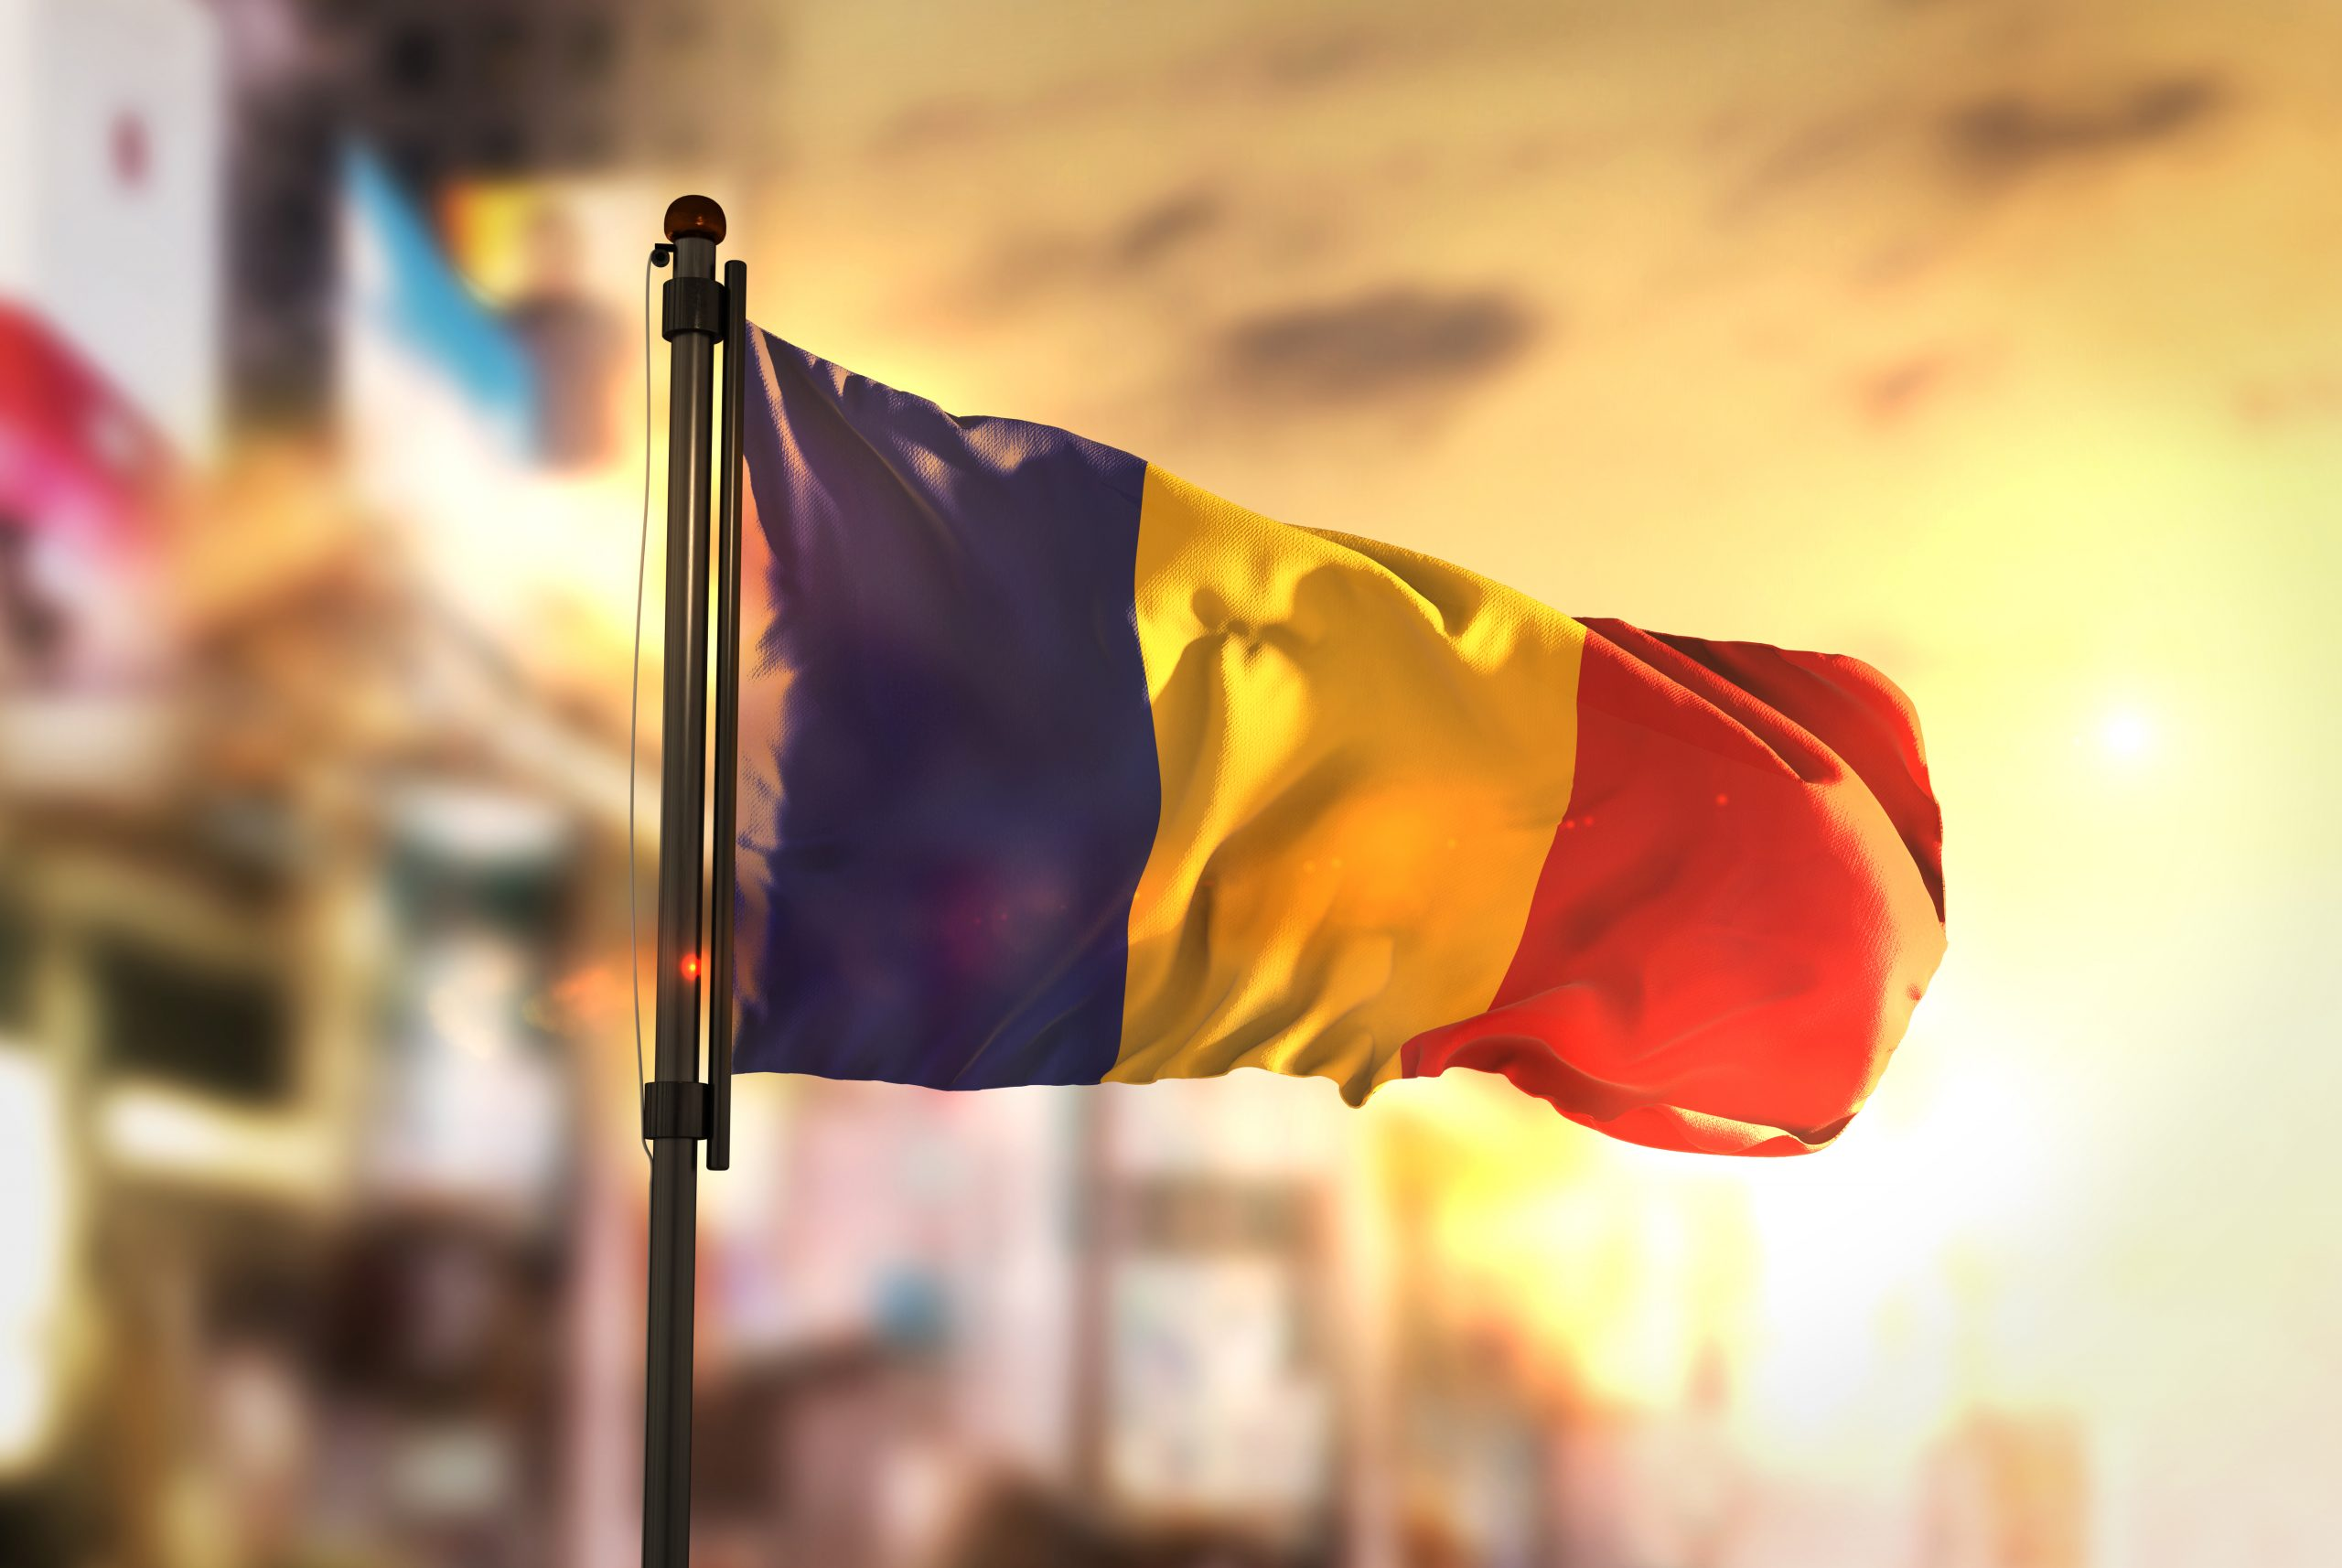 Romania Flag Against City Blurred Background At Sunrise Backlight